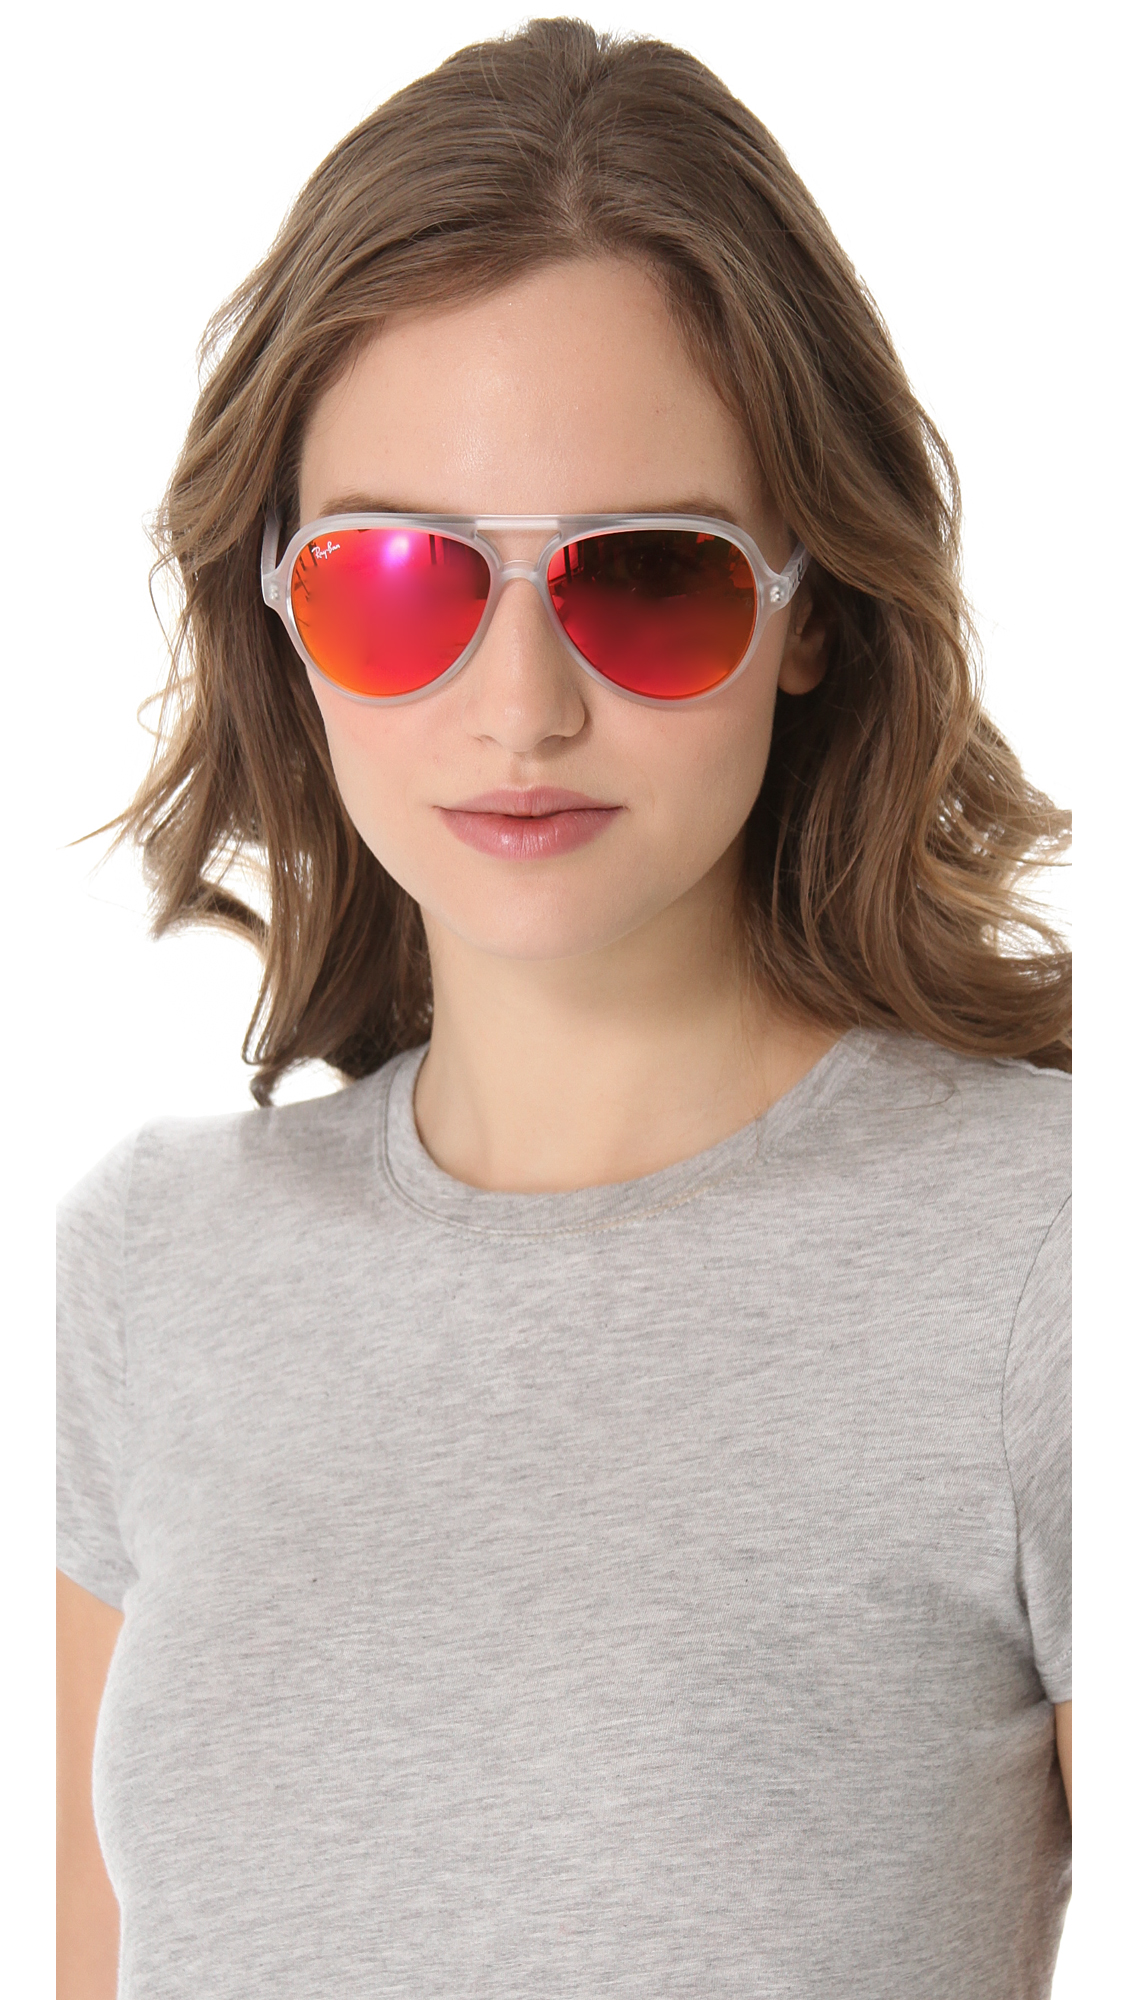 ray ban aviator sunglasses womens  Ray-Ban Mirrored Cats 5000 Aviator Sunglasses